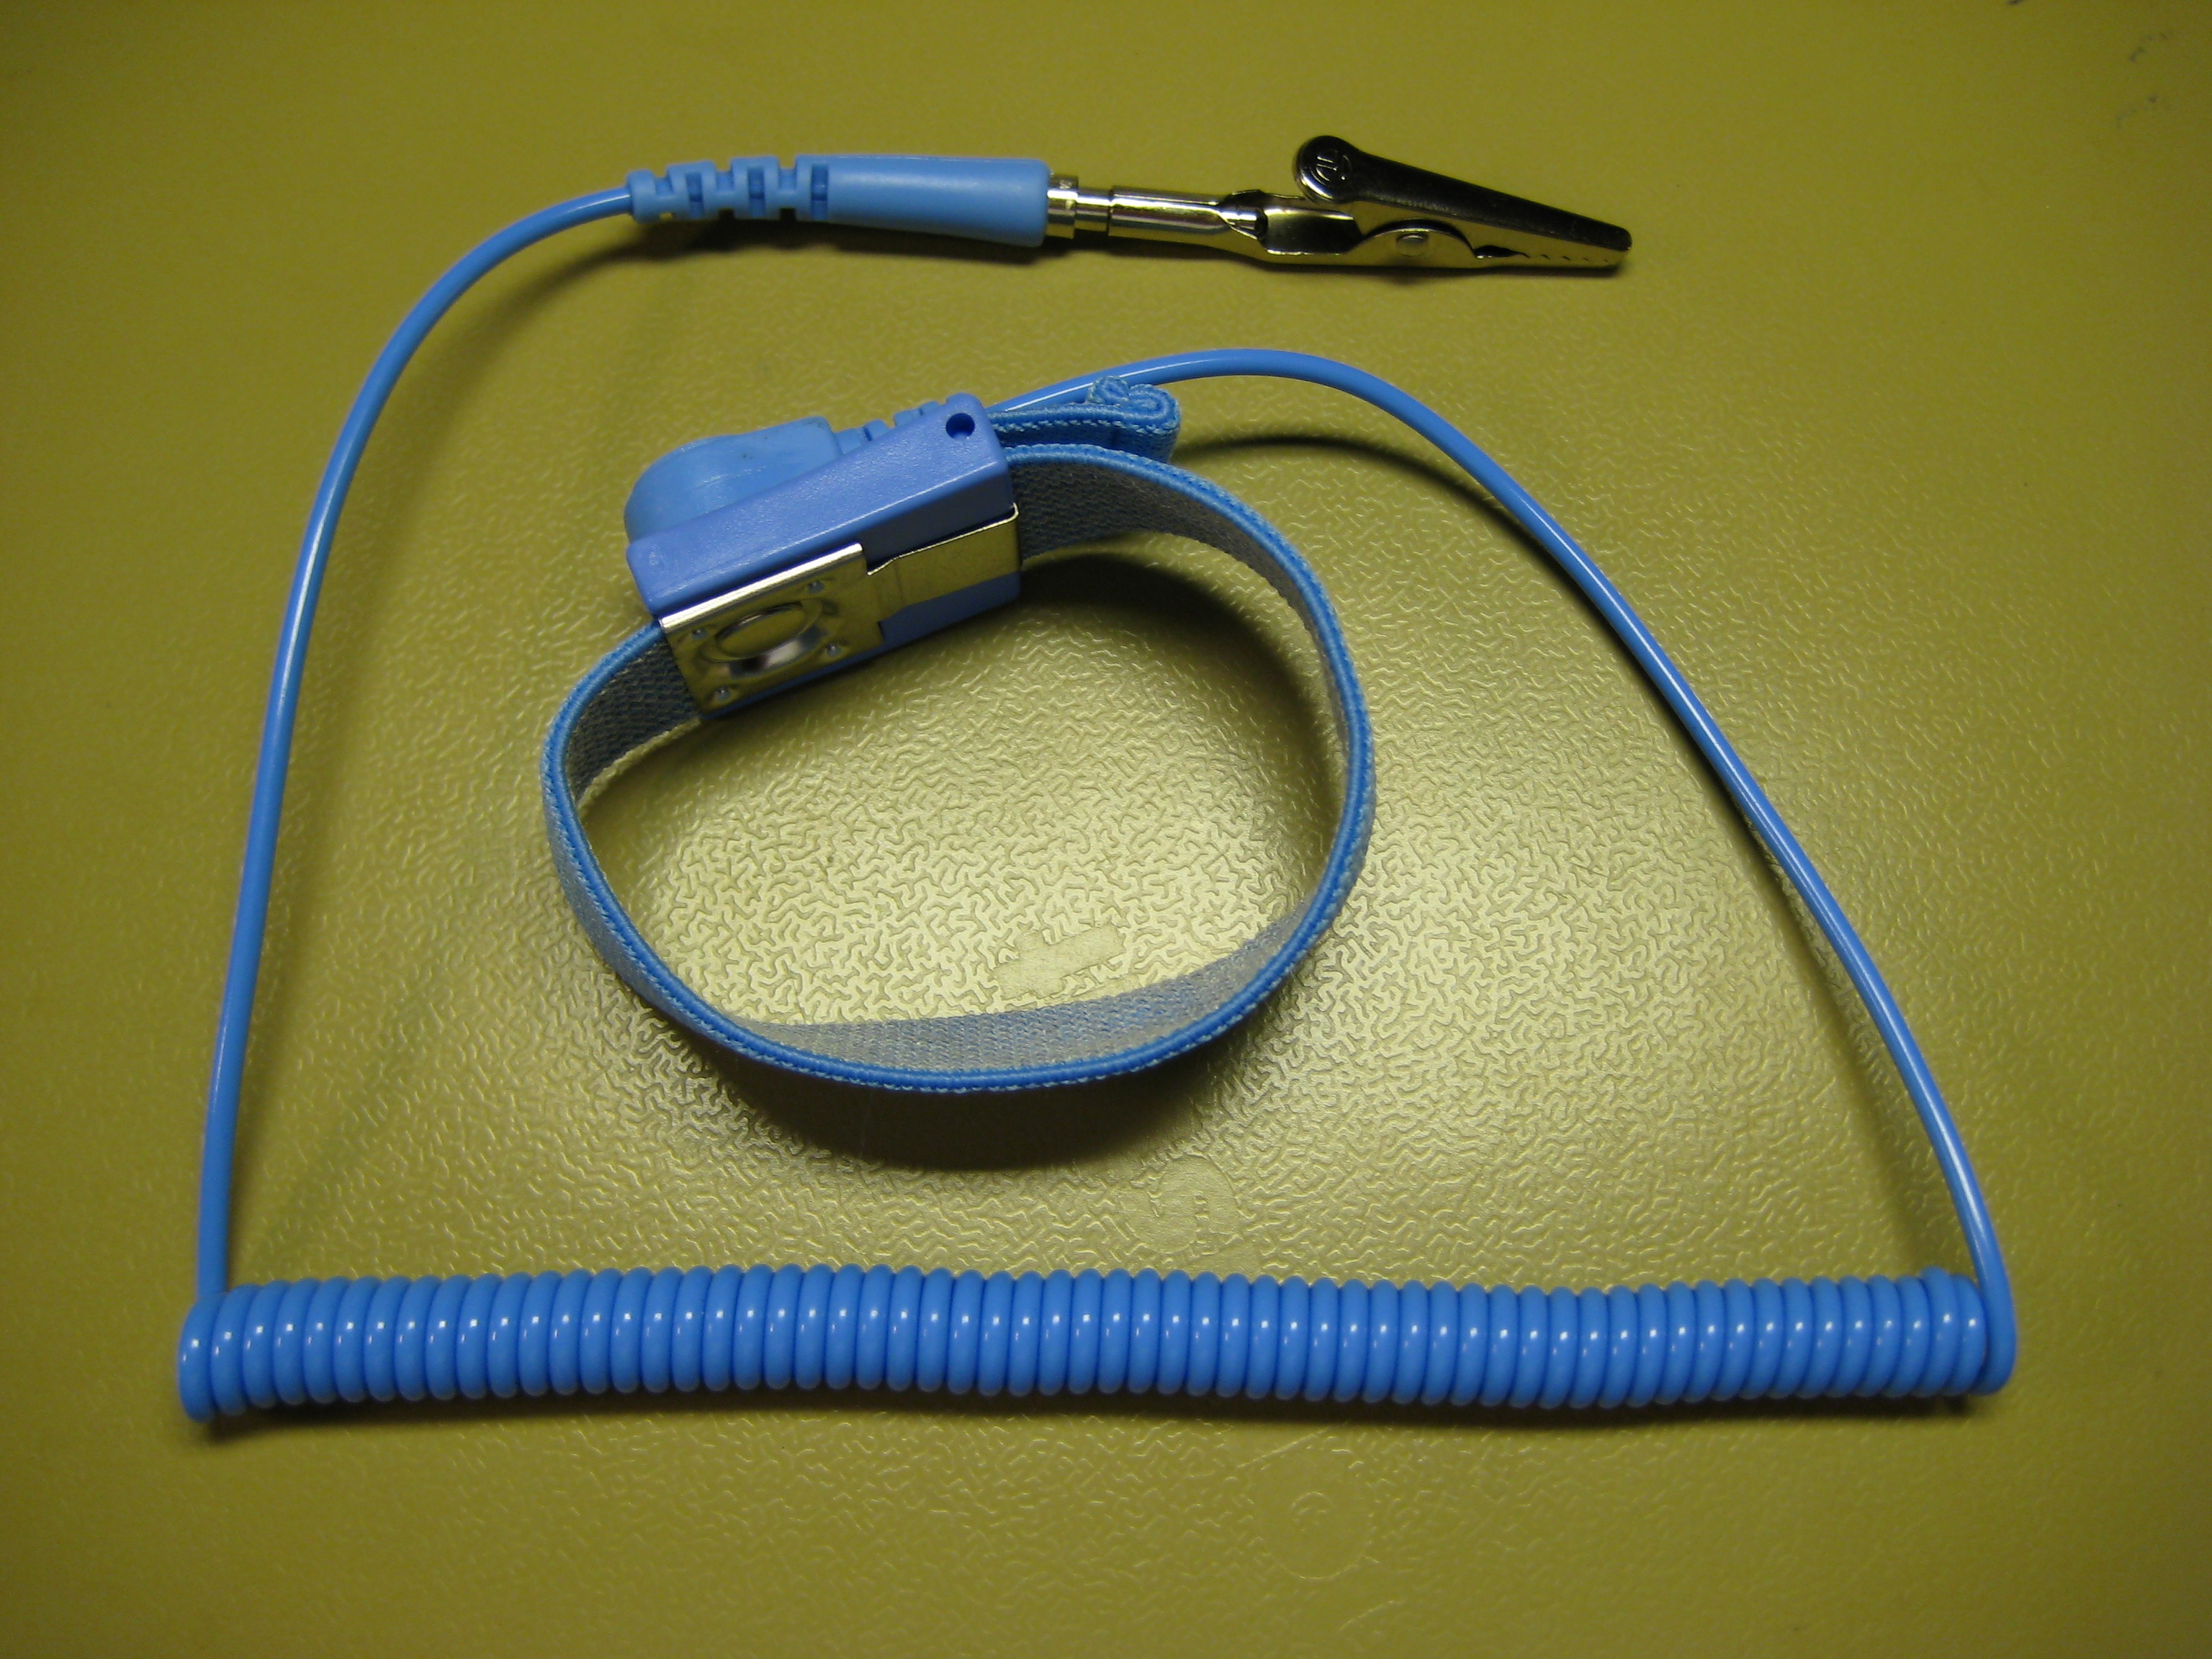 Blue Anti-Static Wrist Strap on Yellow Background With Curly Cord Leading to Alligator Clip